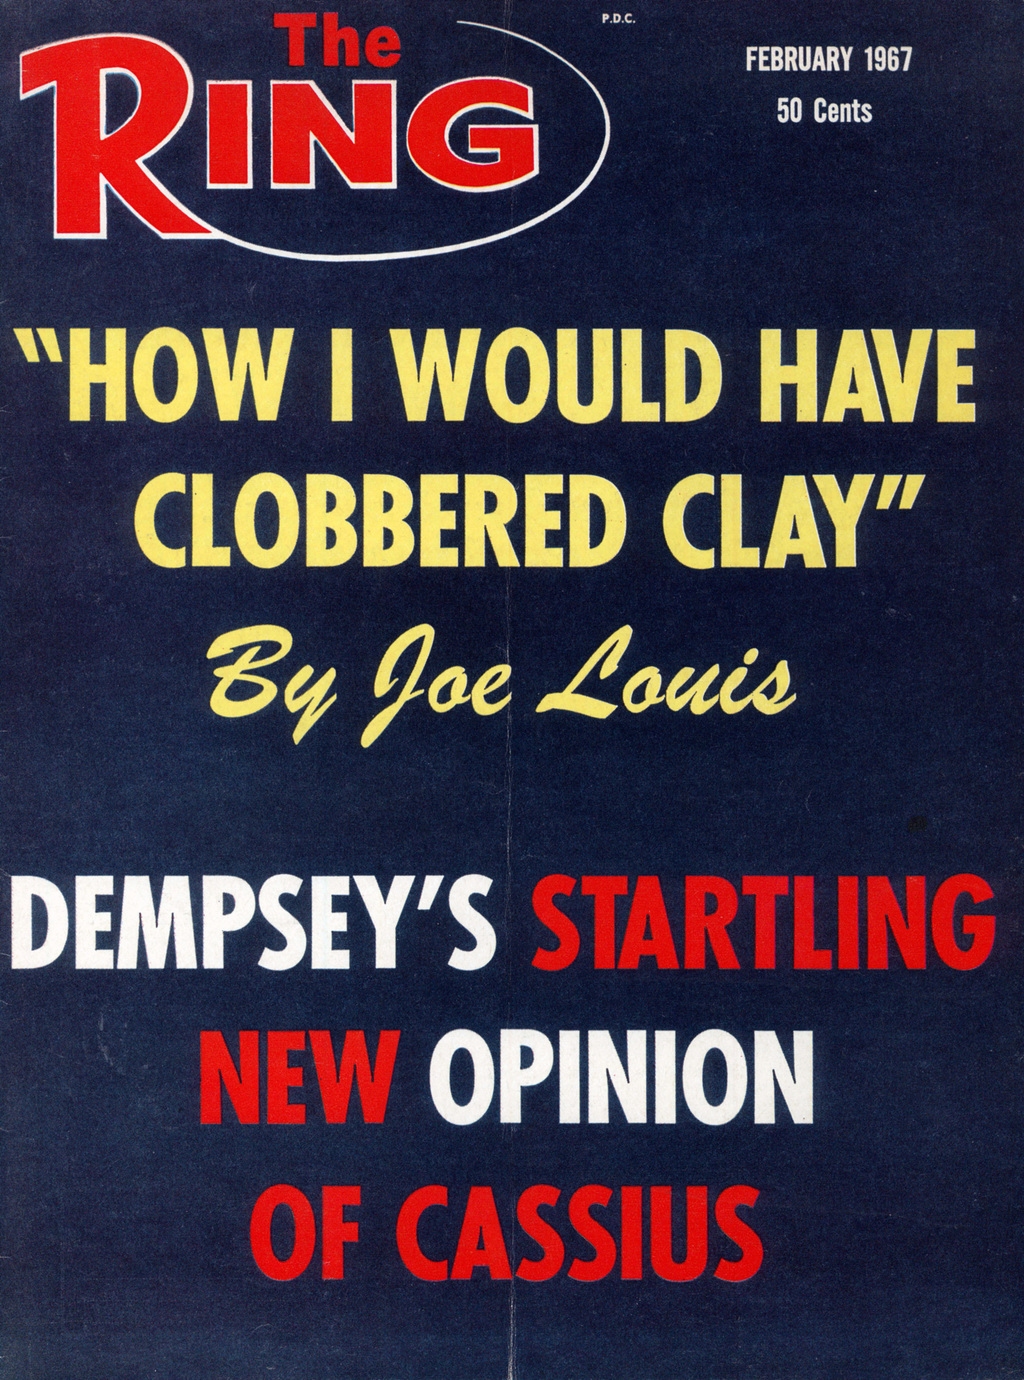 GettyImages 158469156 - From the archive: 'How I would have clobbered Cassius Clay' by Joe Louis